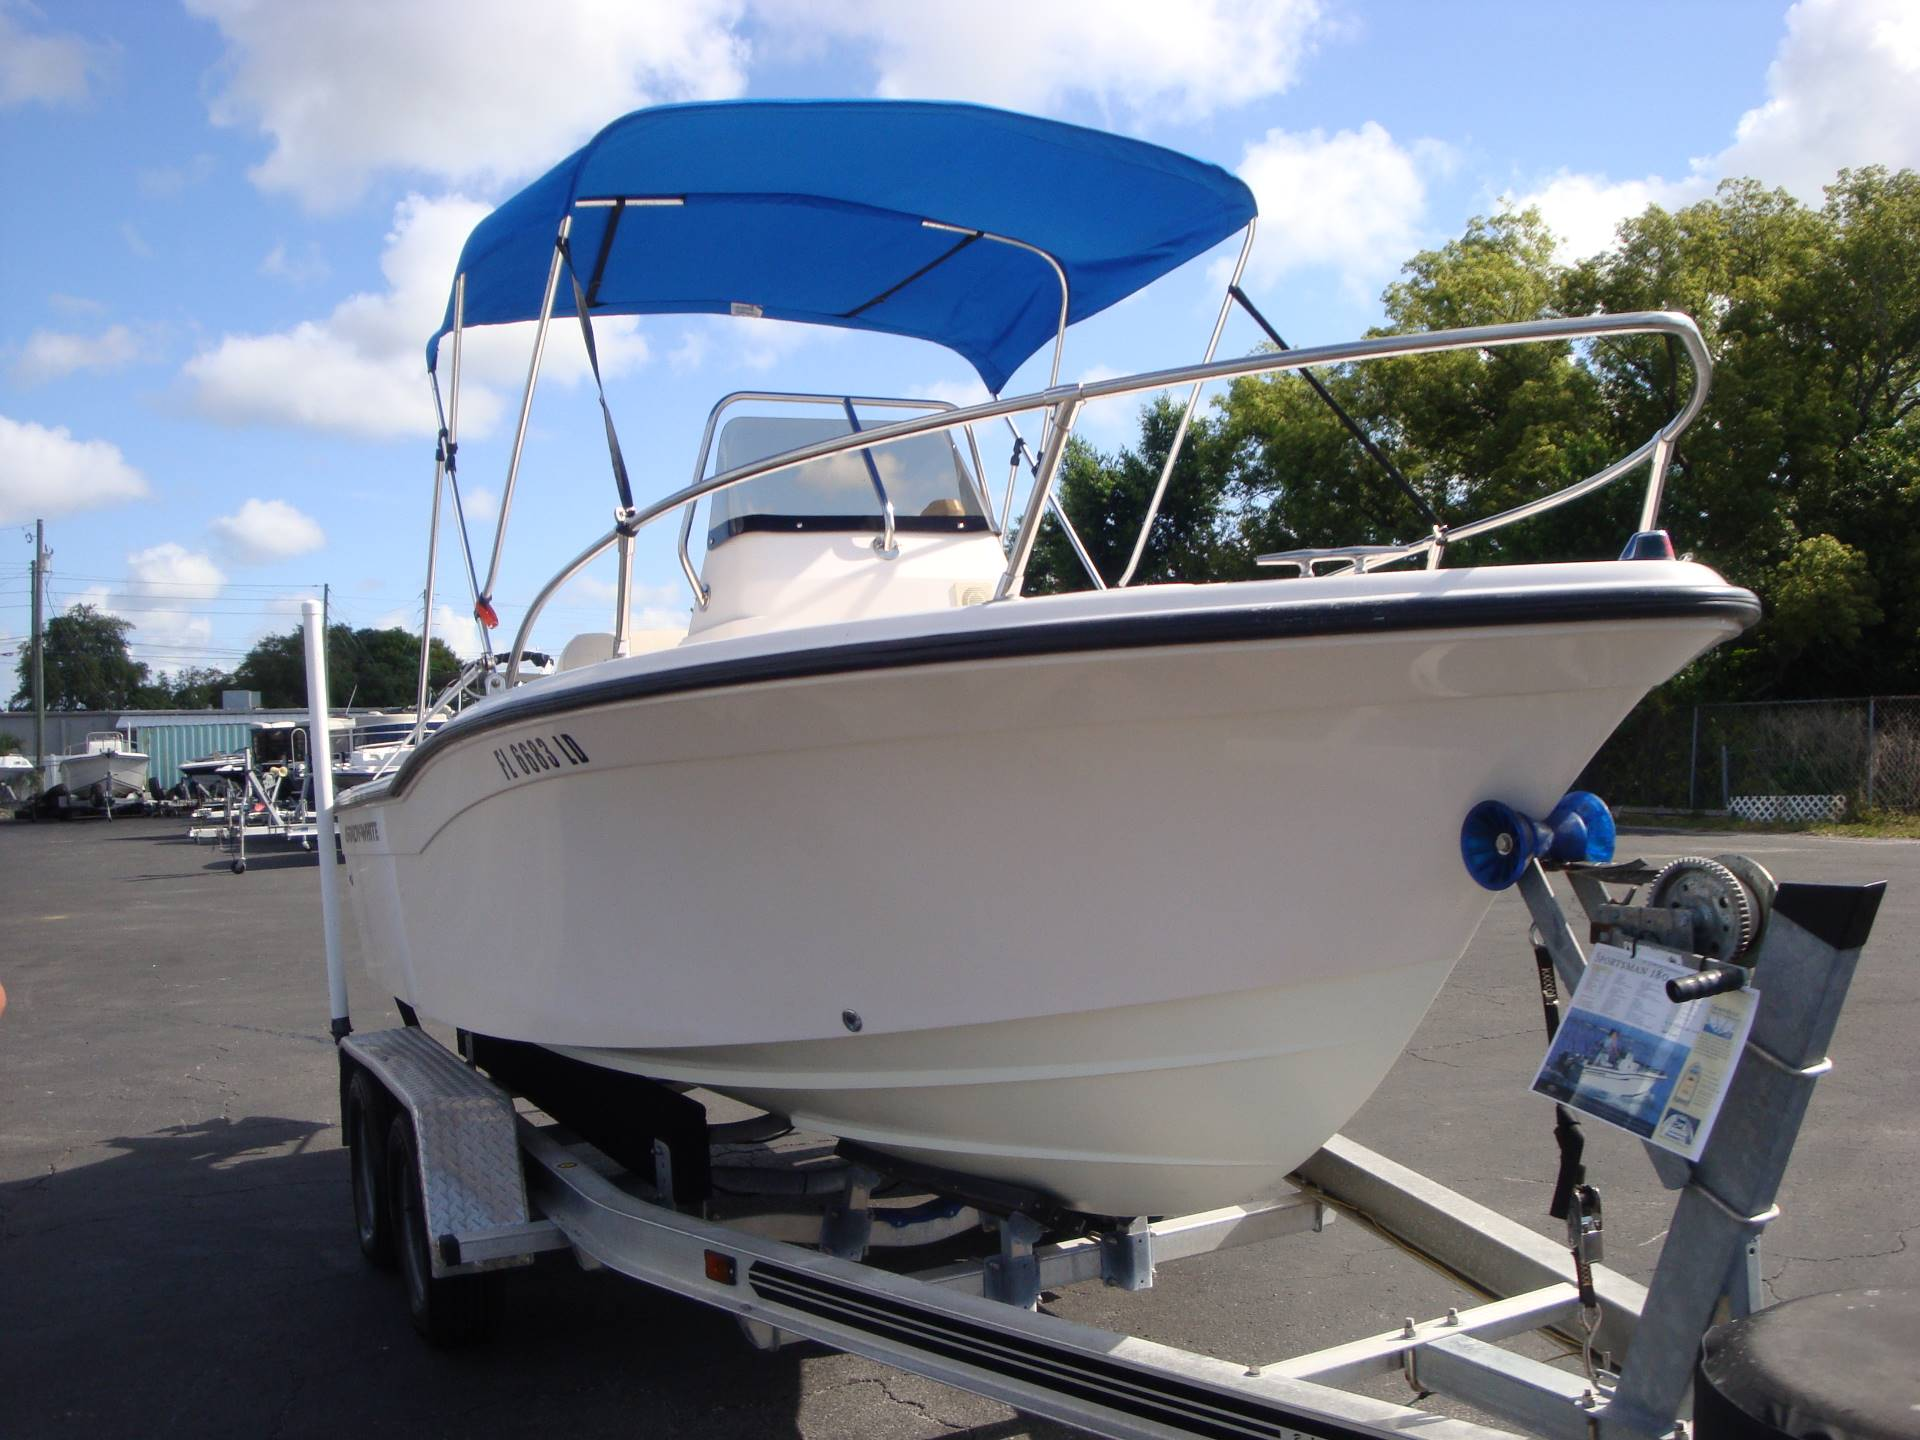 2000 Grady-White Sportsman 180 in Holiday, Florida - Photo 5